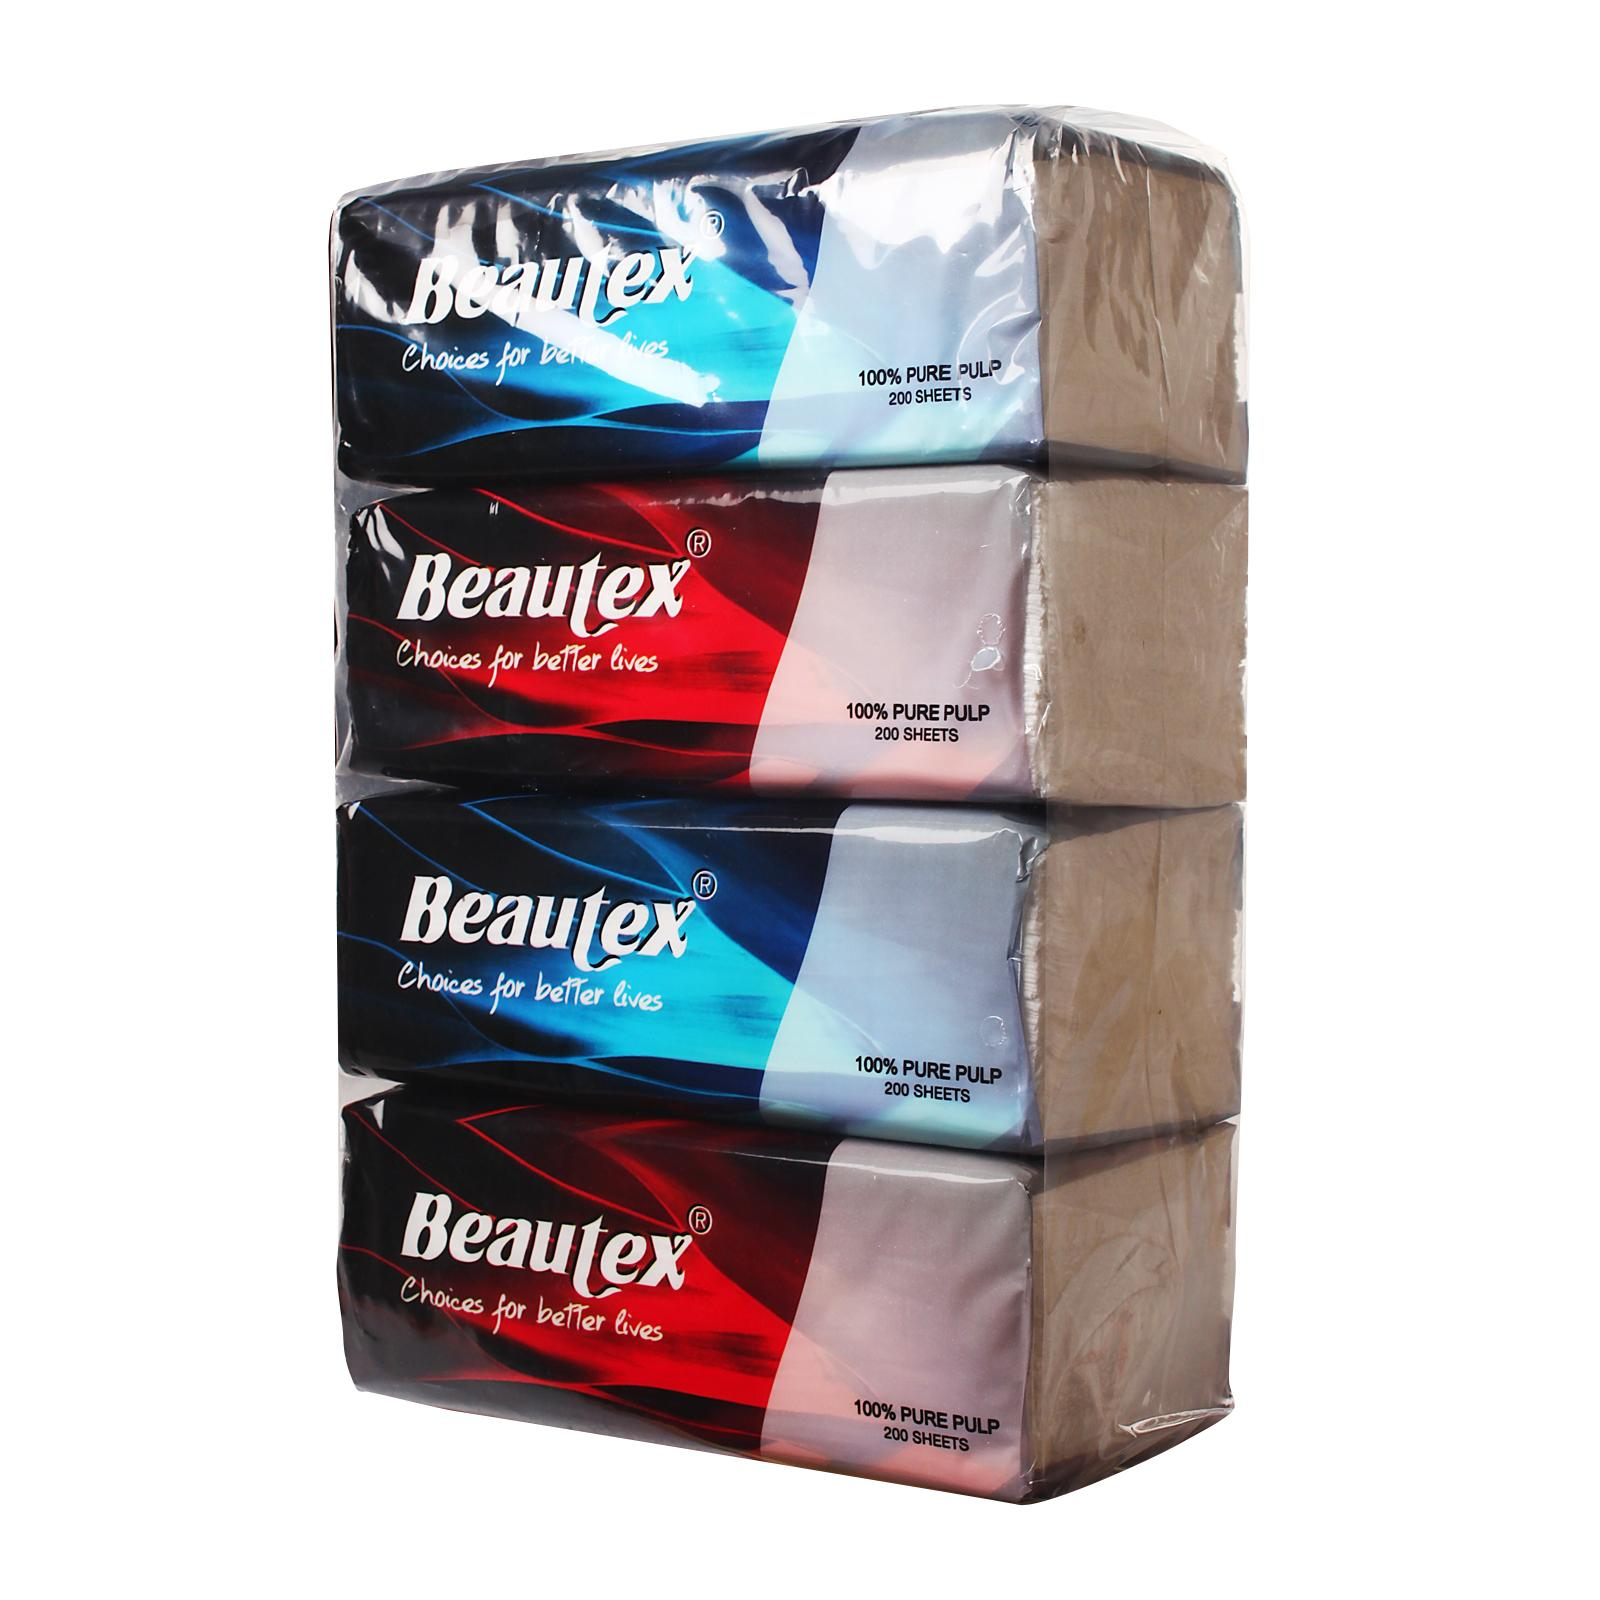 Beautex 2 Ply Soft Pack Facial Tissues